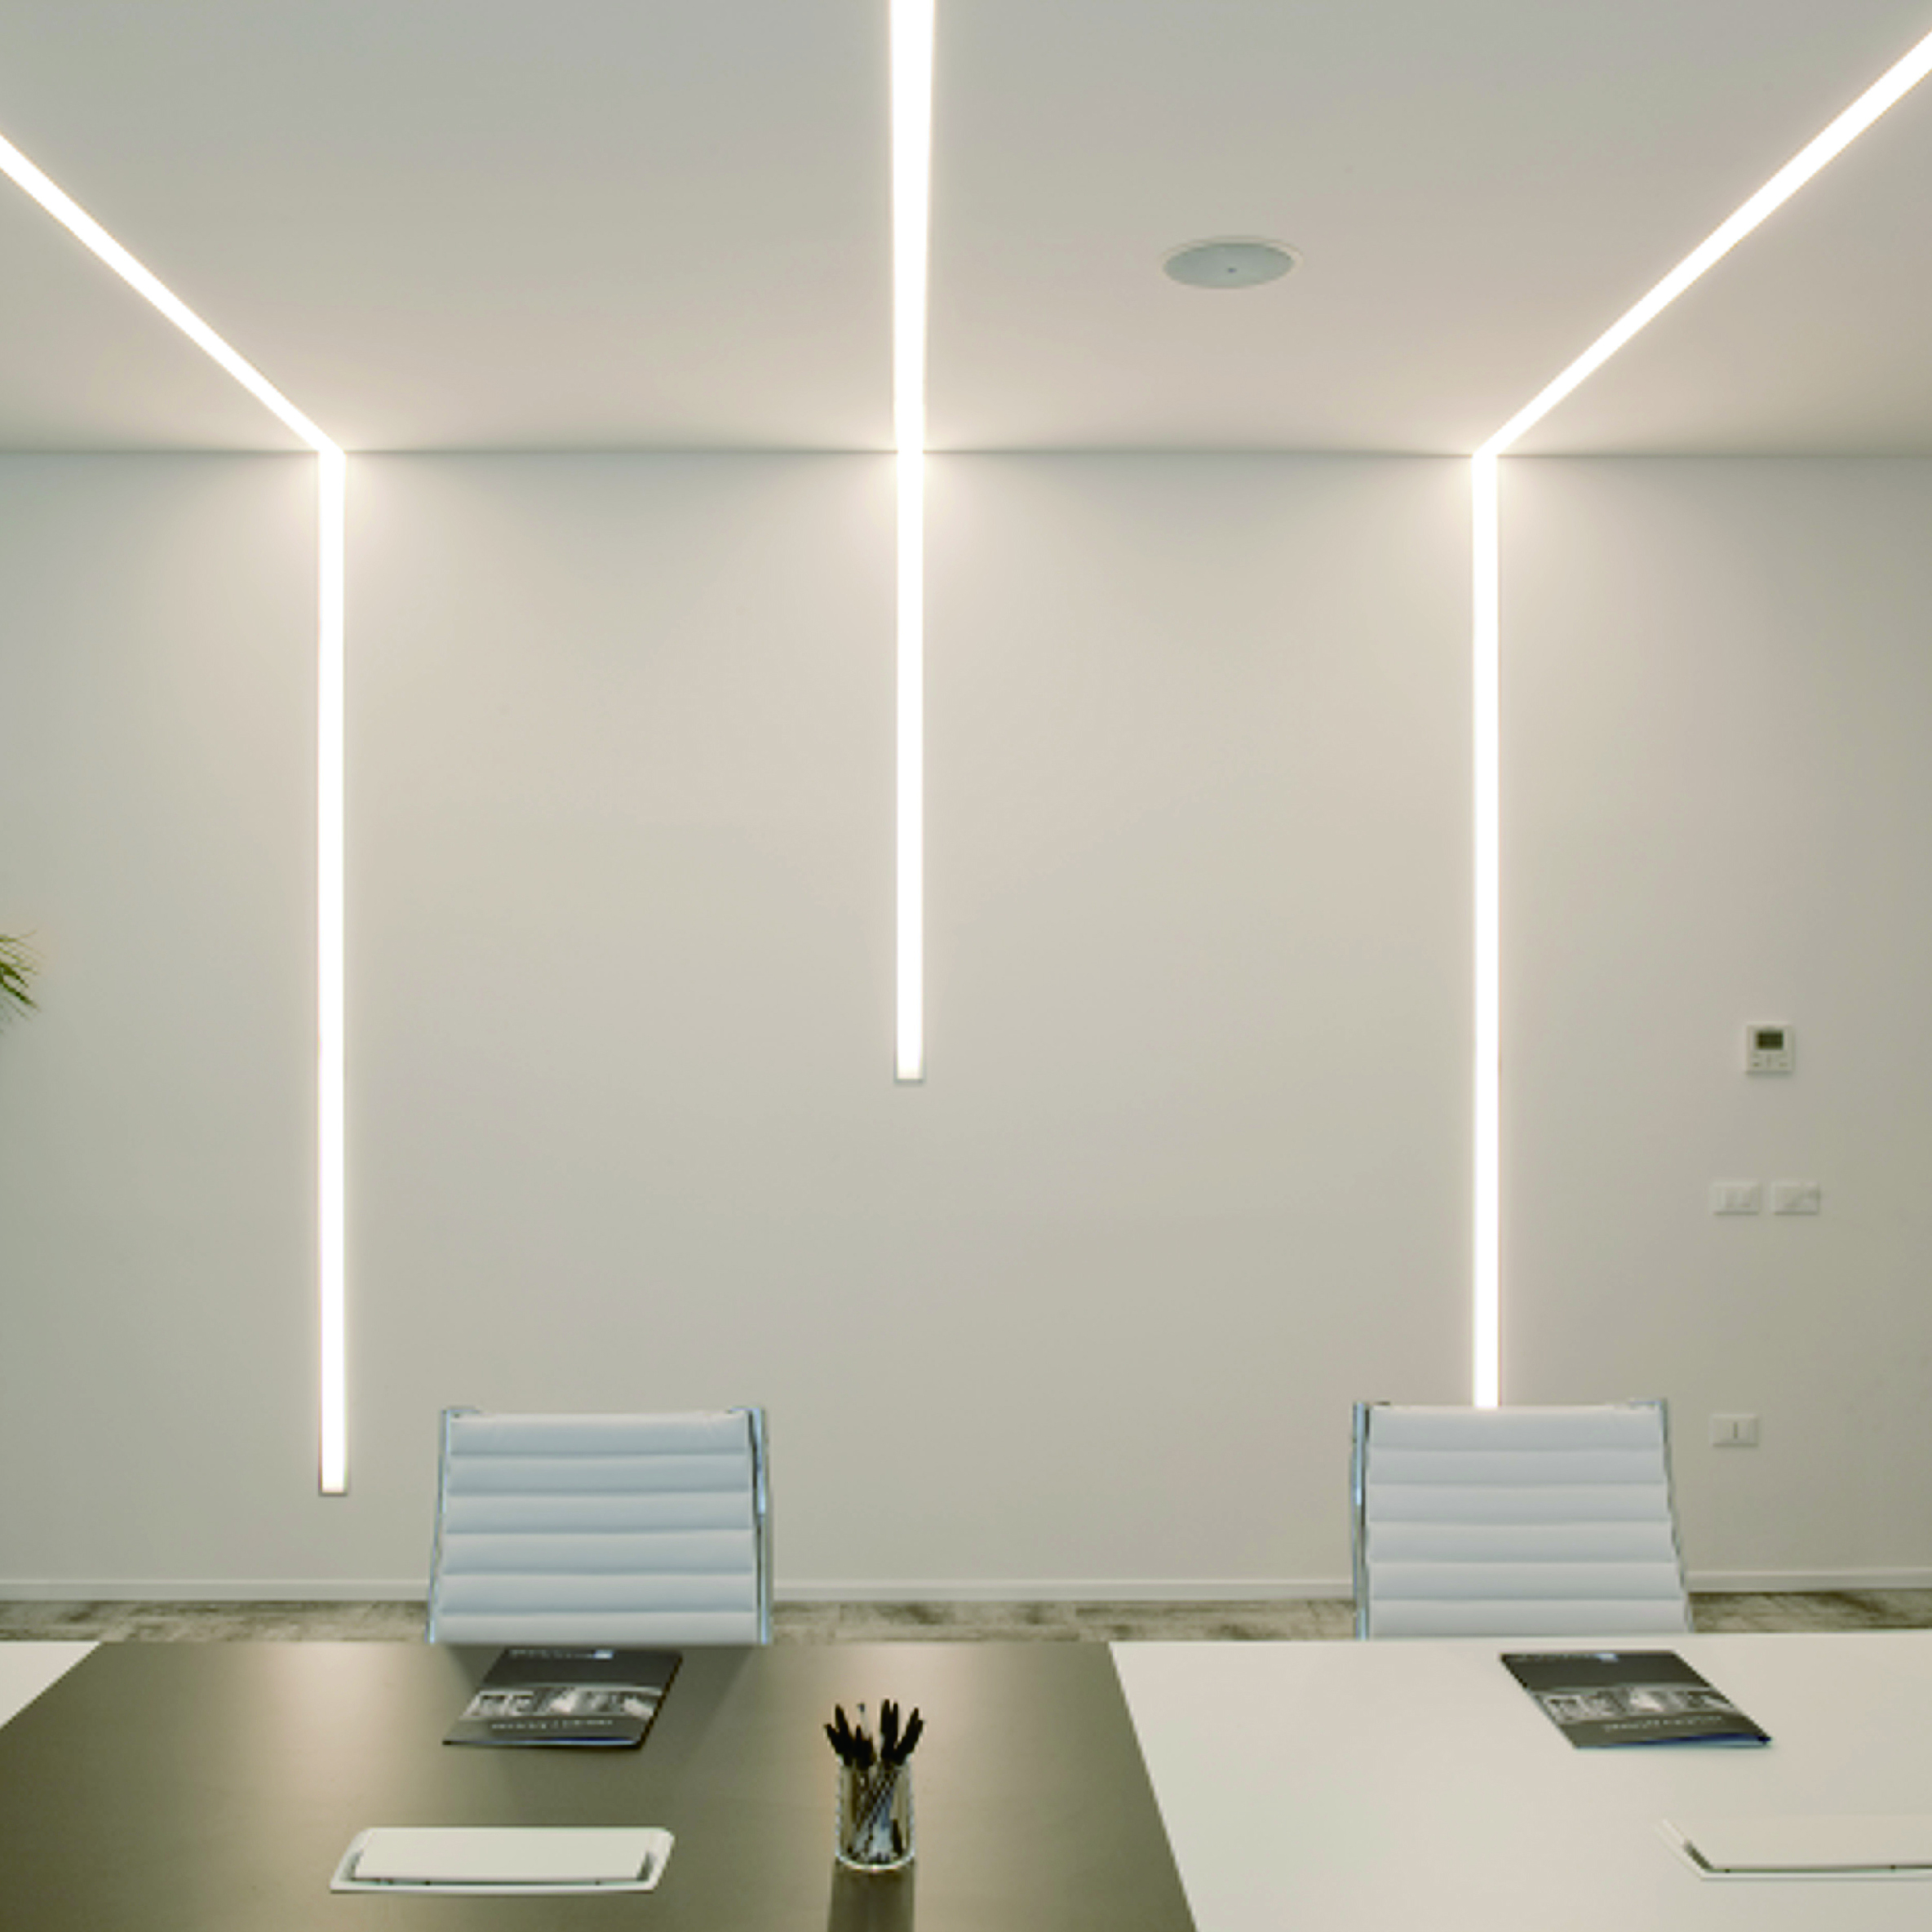 prod built linear in product light kreon lighting led mounted wall profile johto ceiling